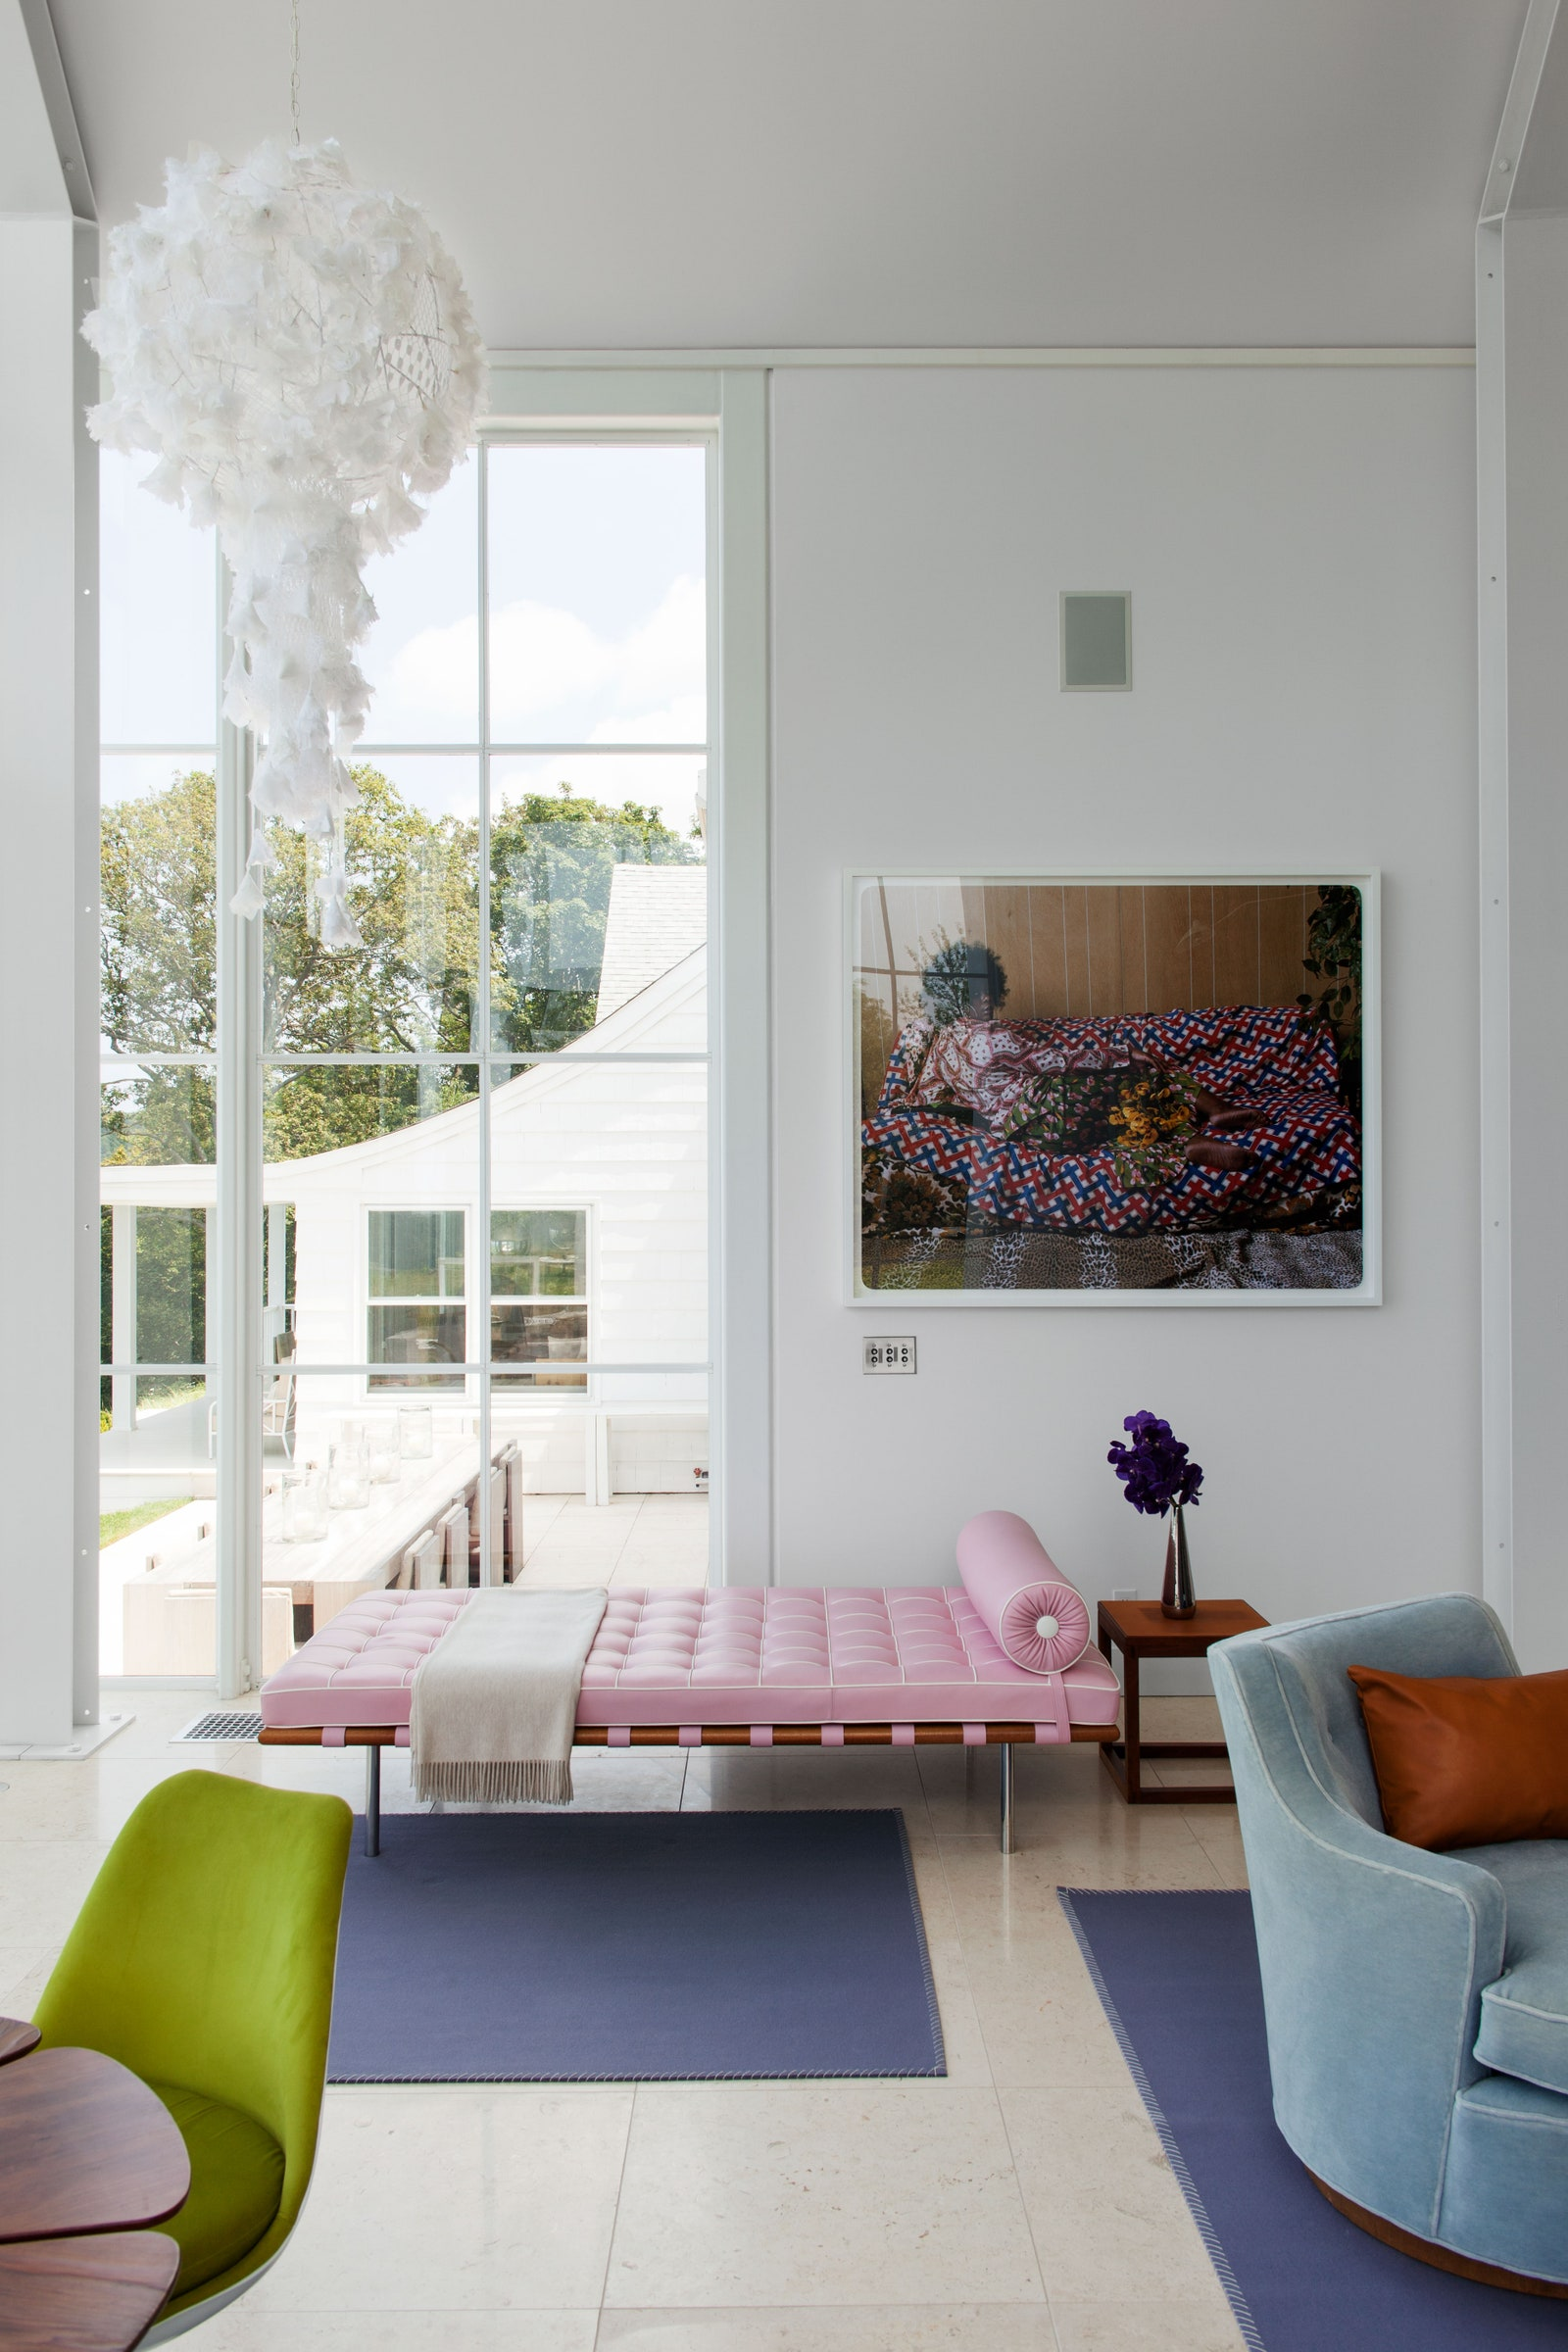 A pink Barcelona couch